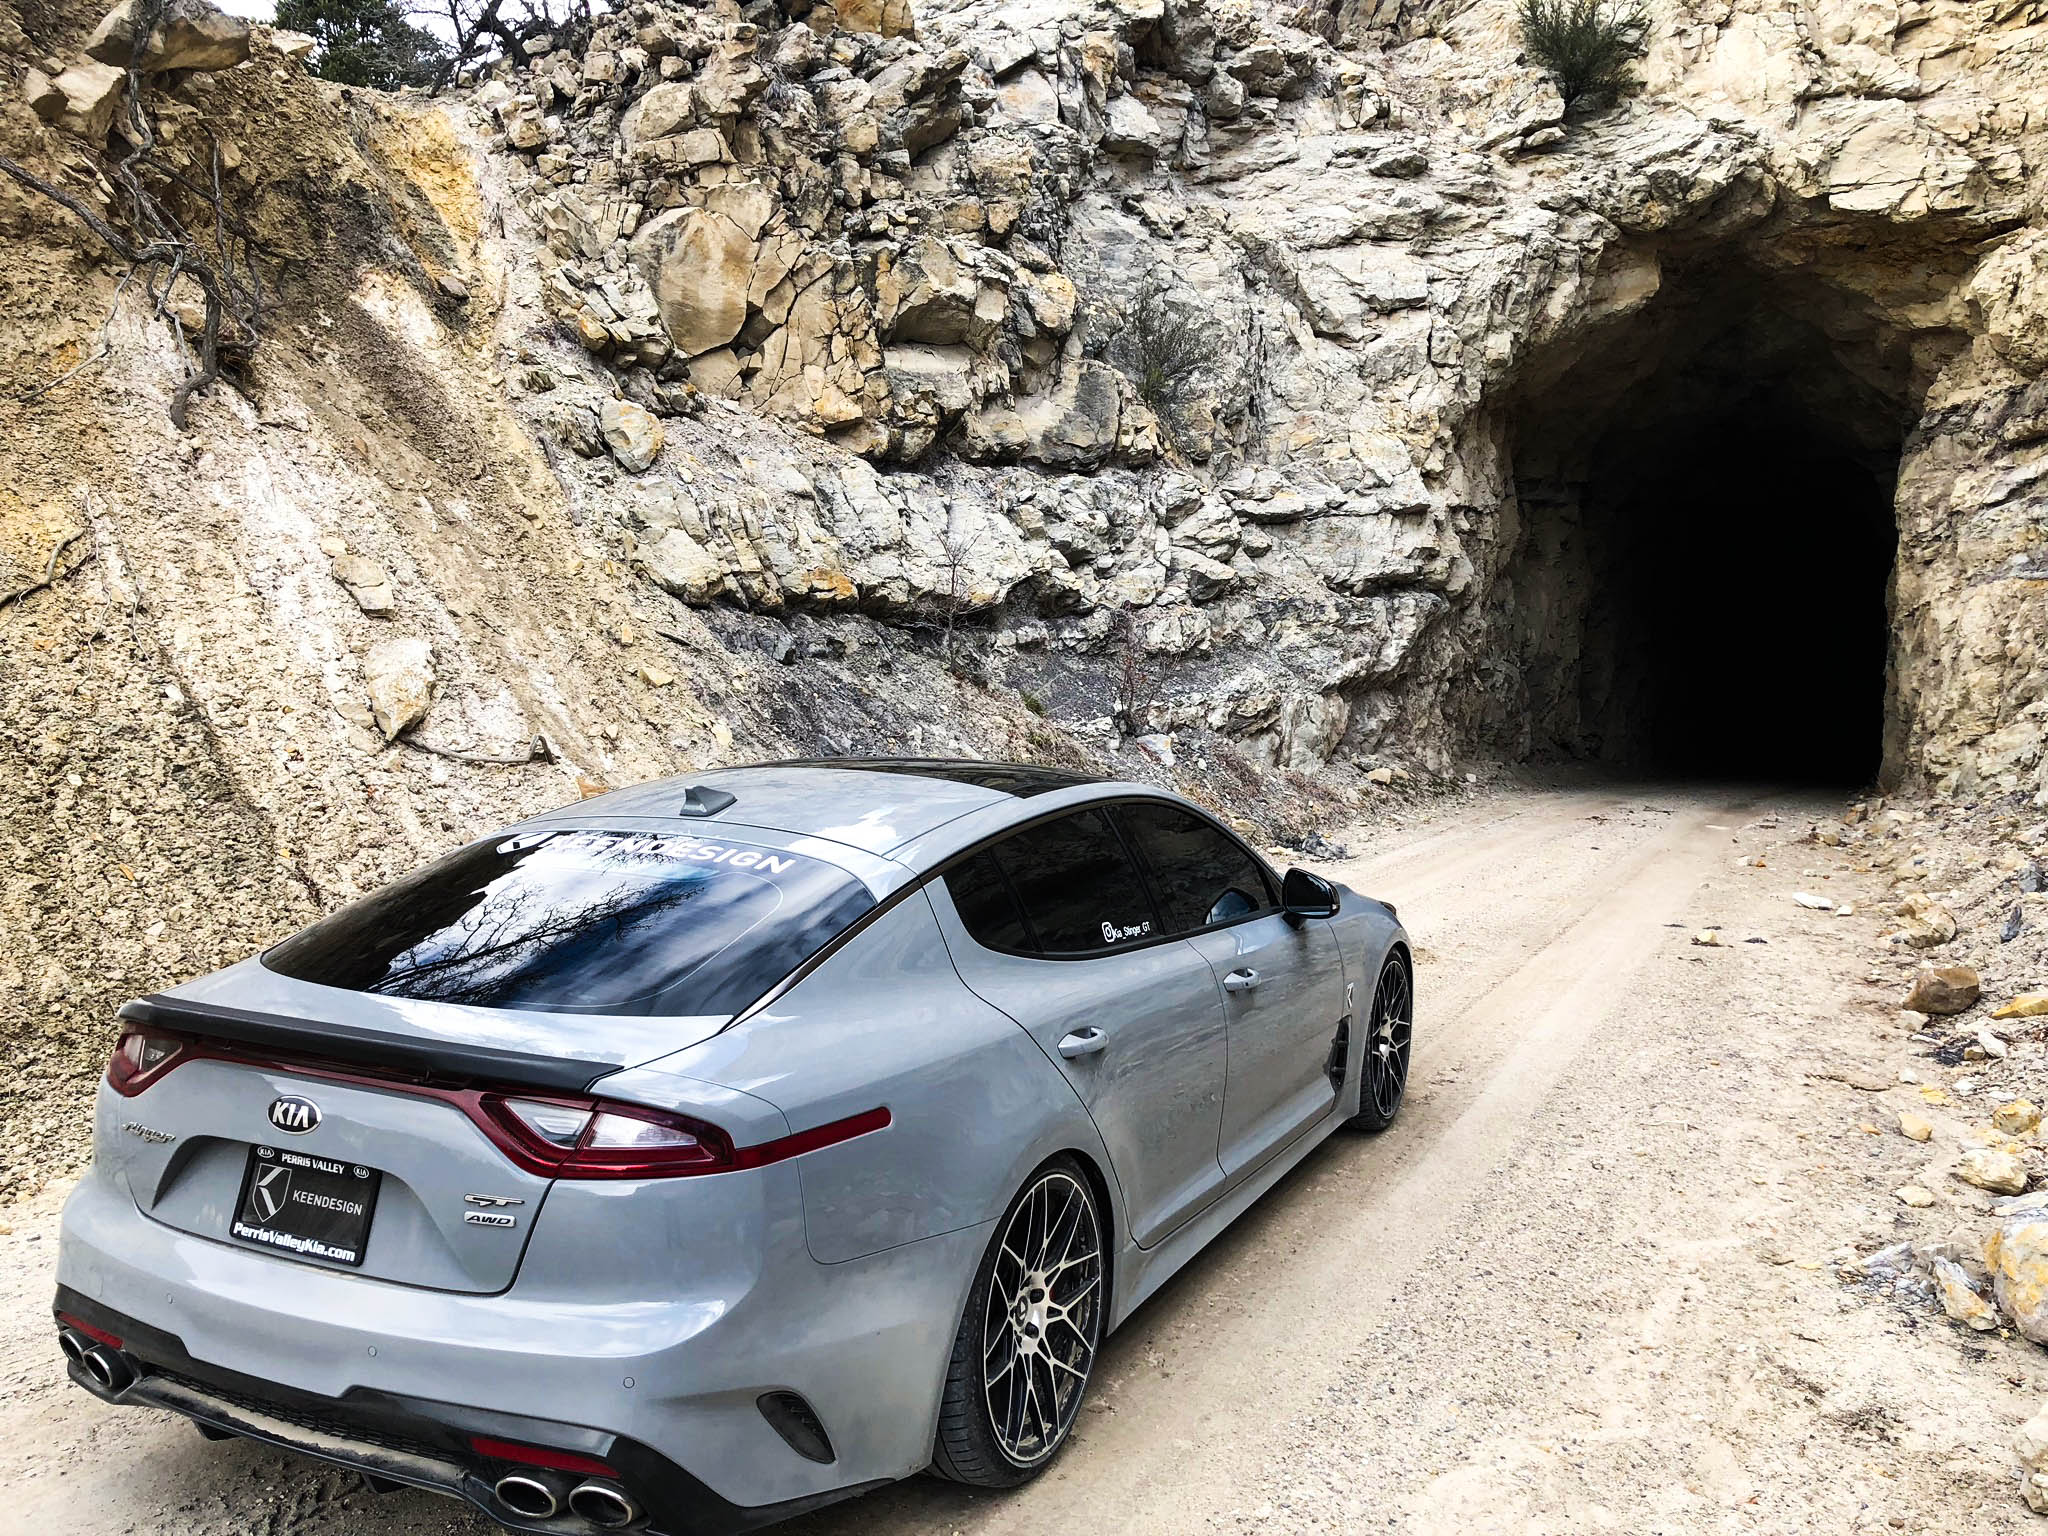 kia stinger road trip keendesign kia stinger road trip keendesign